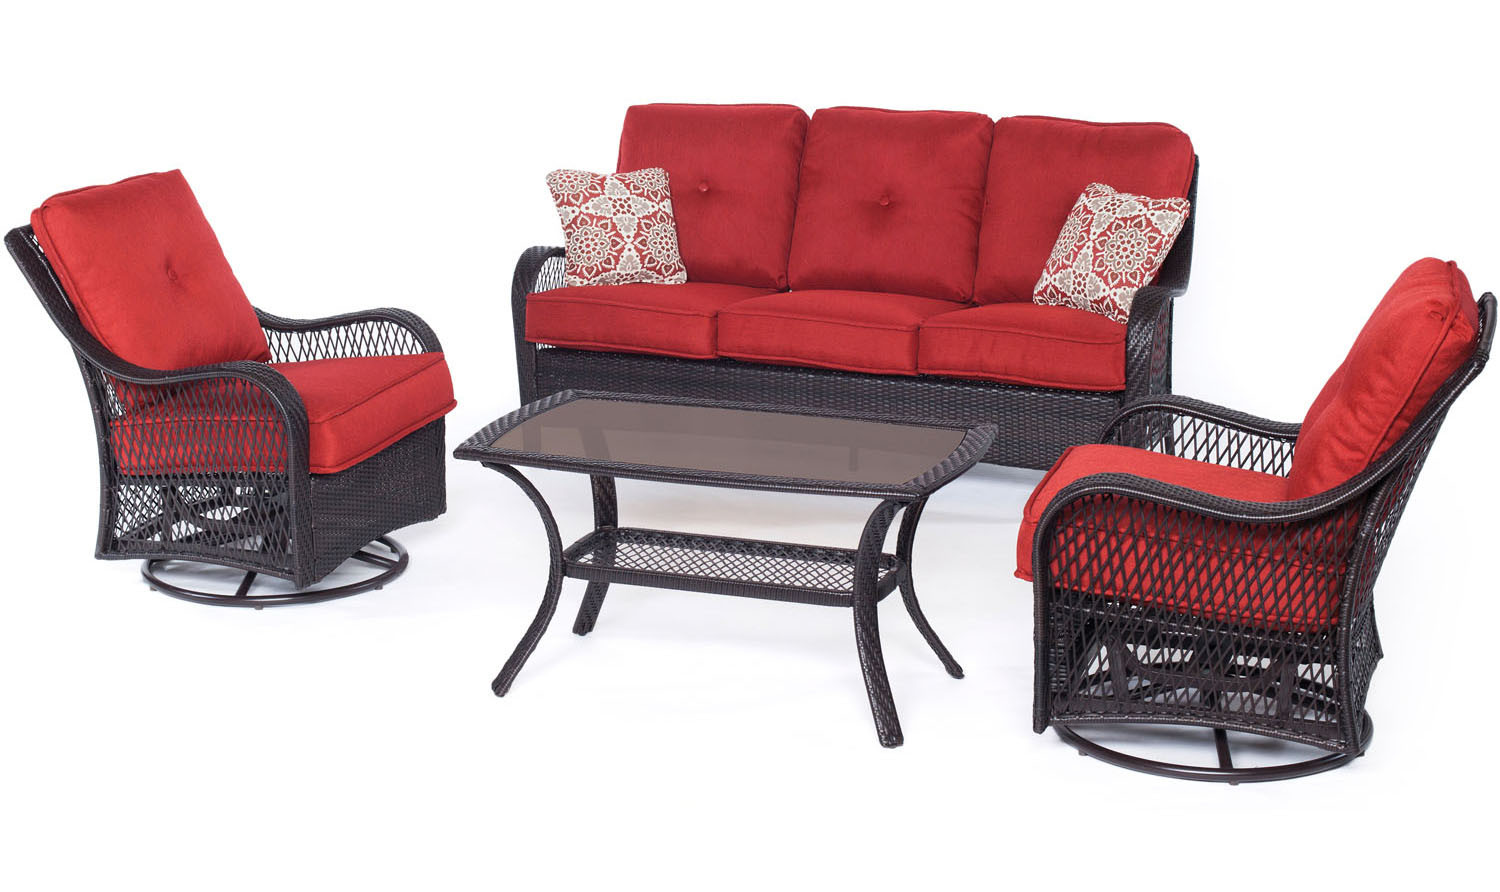 Hanover Orleans Autumn Berry & French Roast 4-Piece Outdoor Seating Patio Set